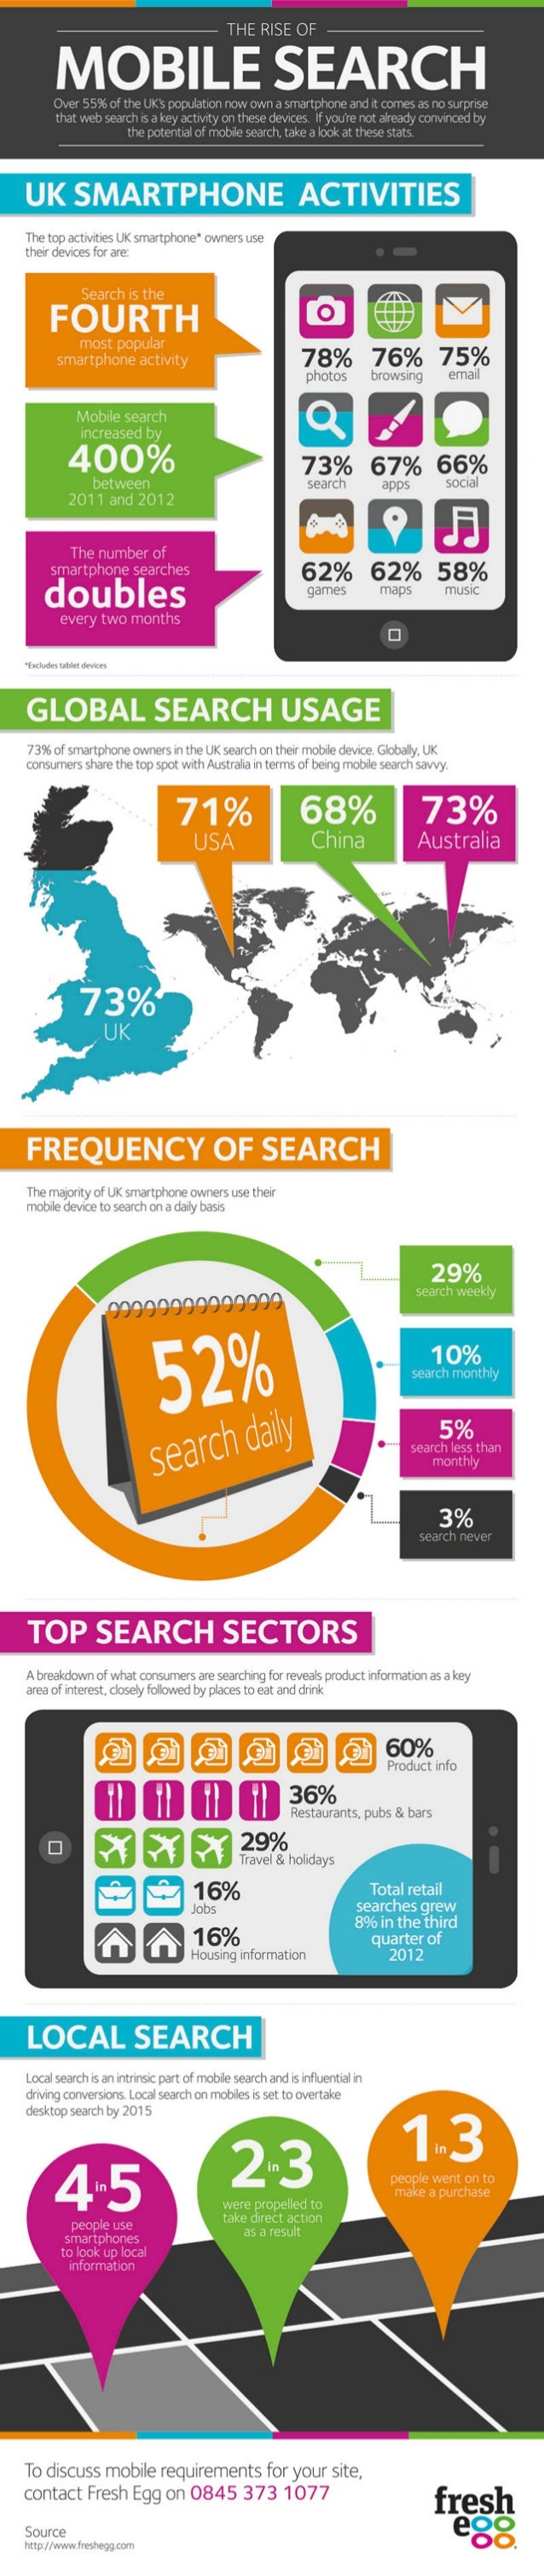 The rise of mobile search infographic - Fresh Egg UK